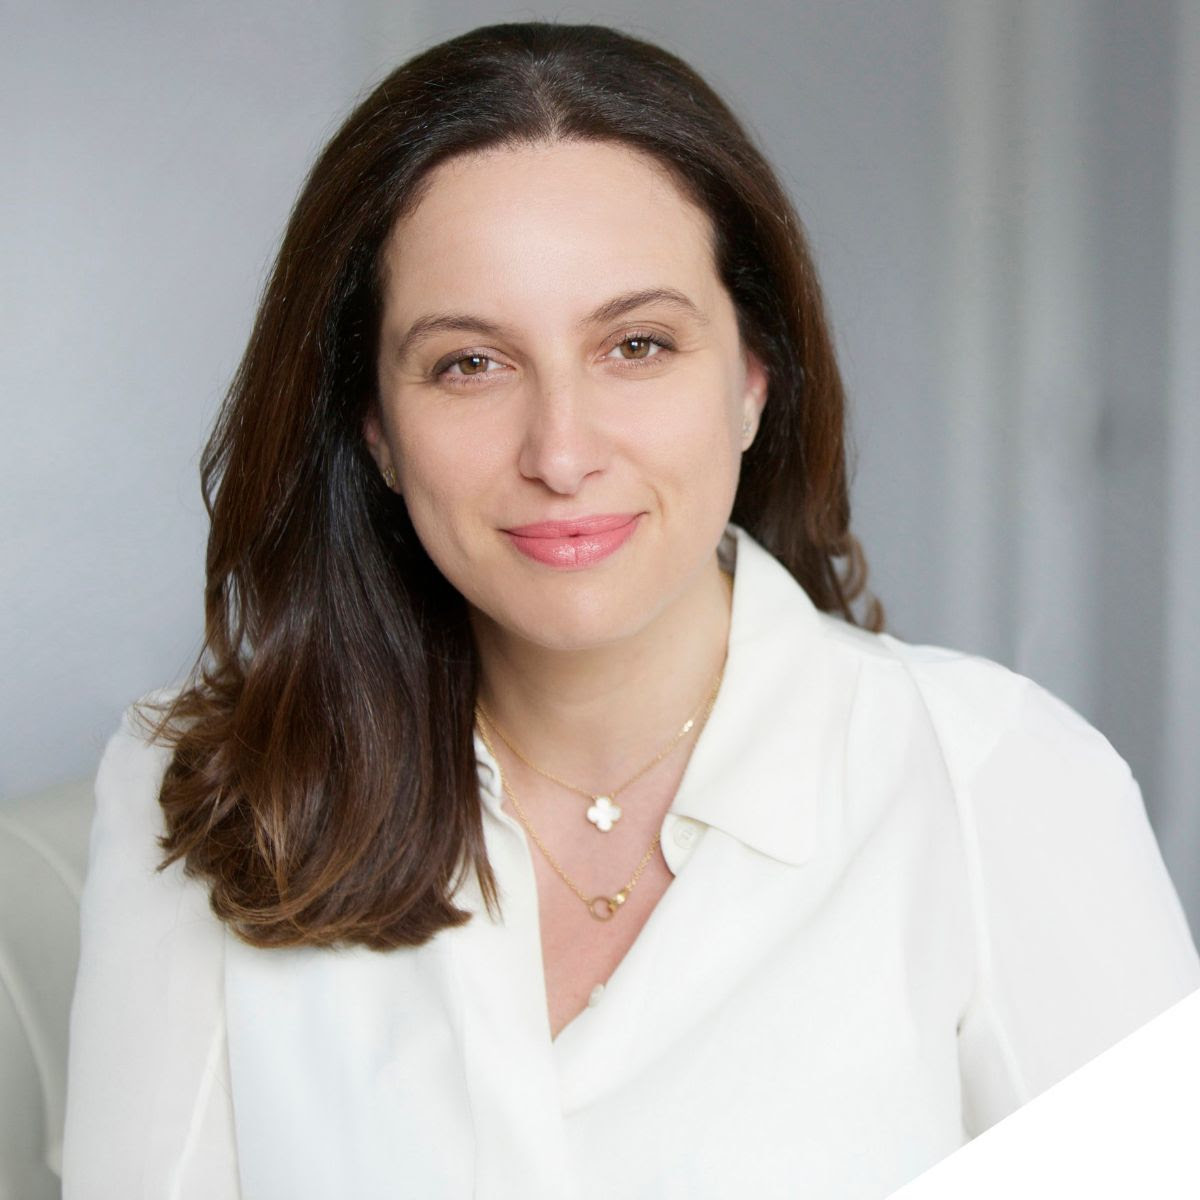 Claire SIMIER - Executive Coach and Strategic Consultant, WIF MentorTrusted thought-partner to business executives, entrepreneurs and global organizations facing international competition and needing internal realignment.More info: simierpartners.com